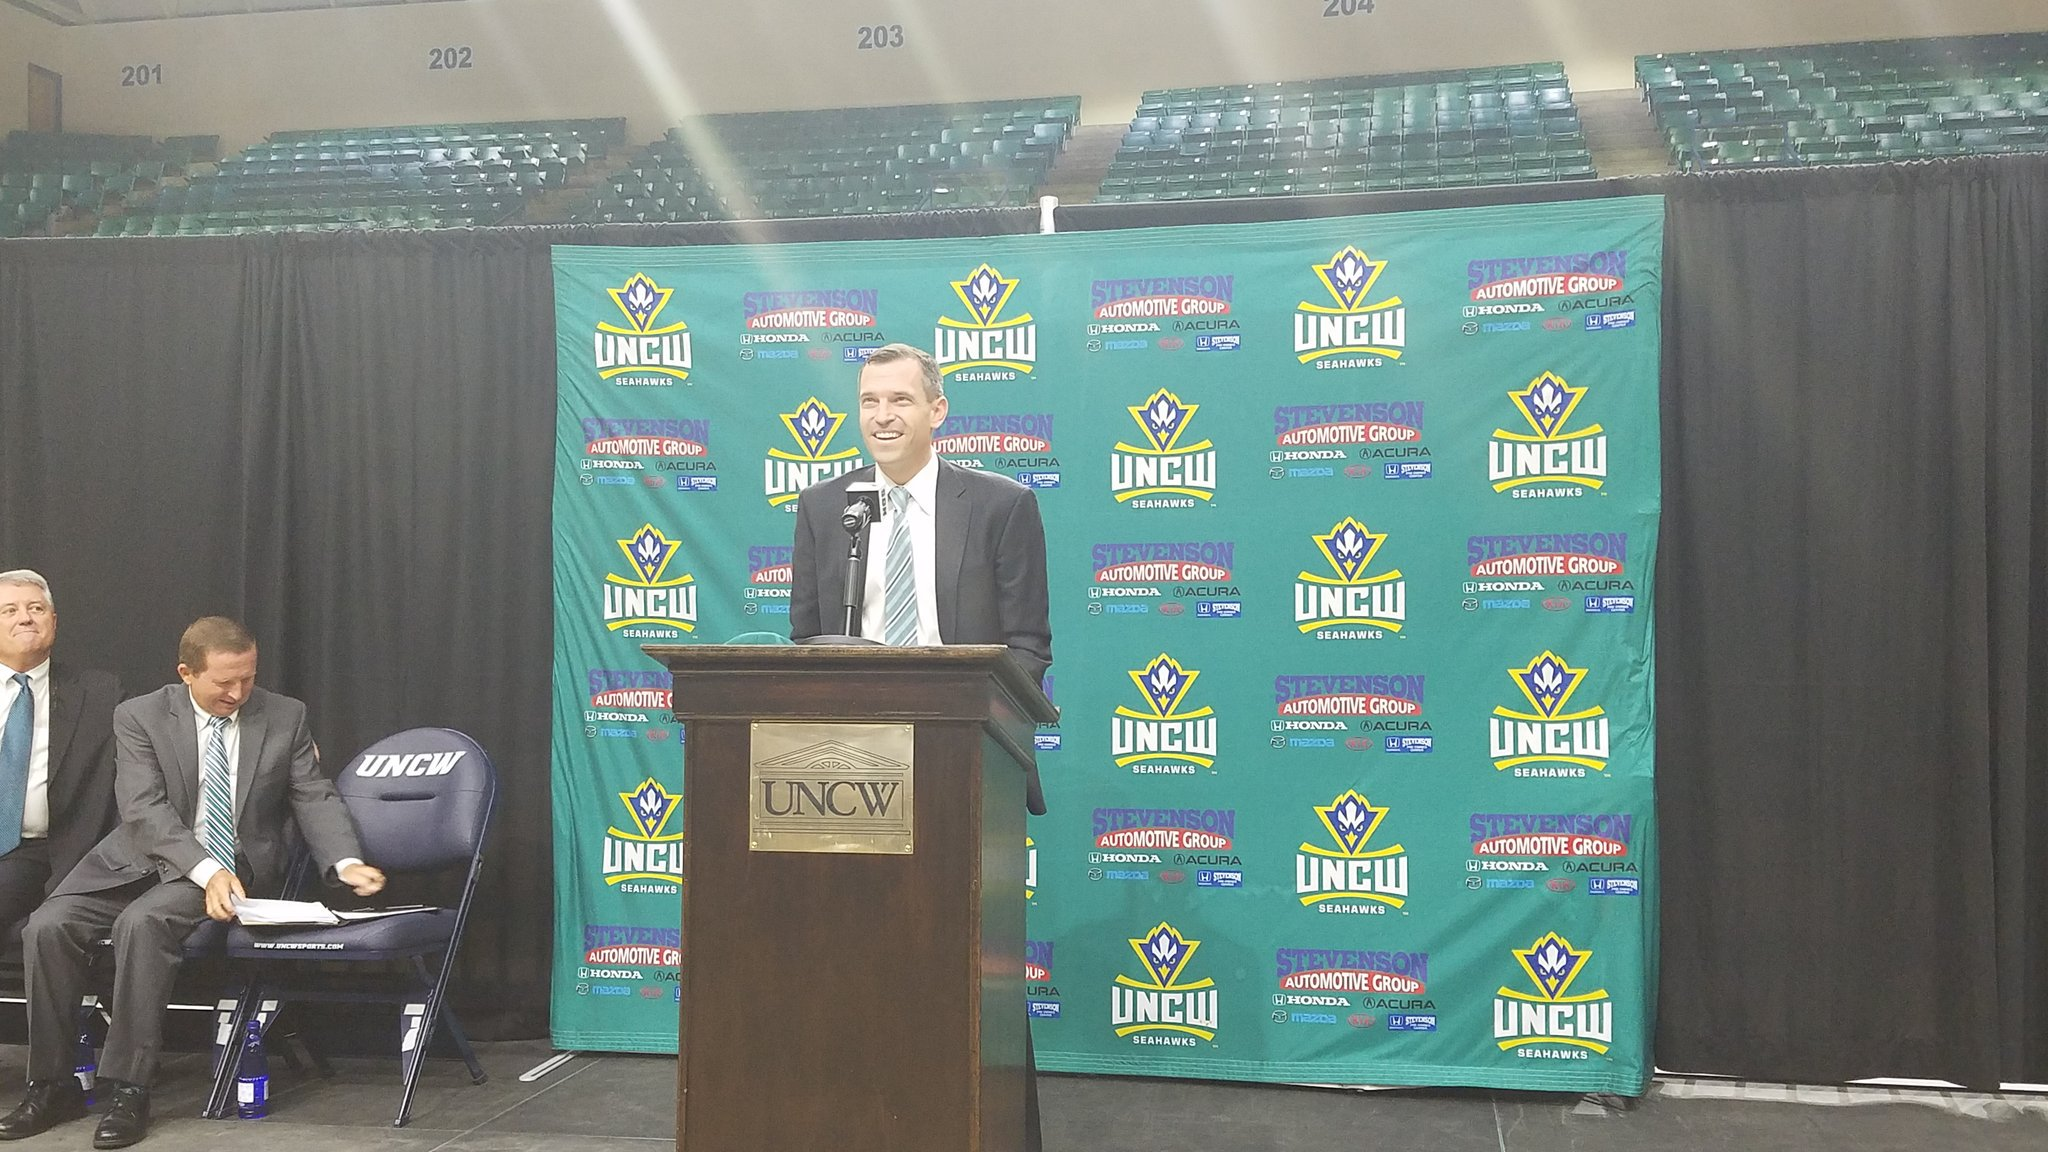 C.B. McGrath greets UNCW fans with a smile during the opening press conference welcoming him as the next UNCW head coach.